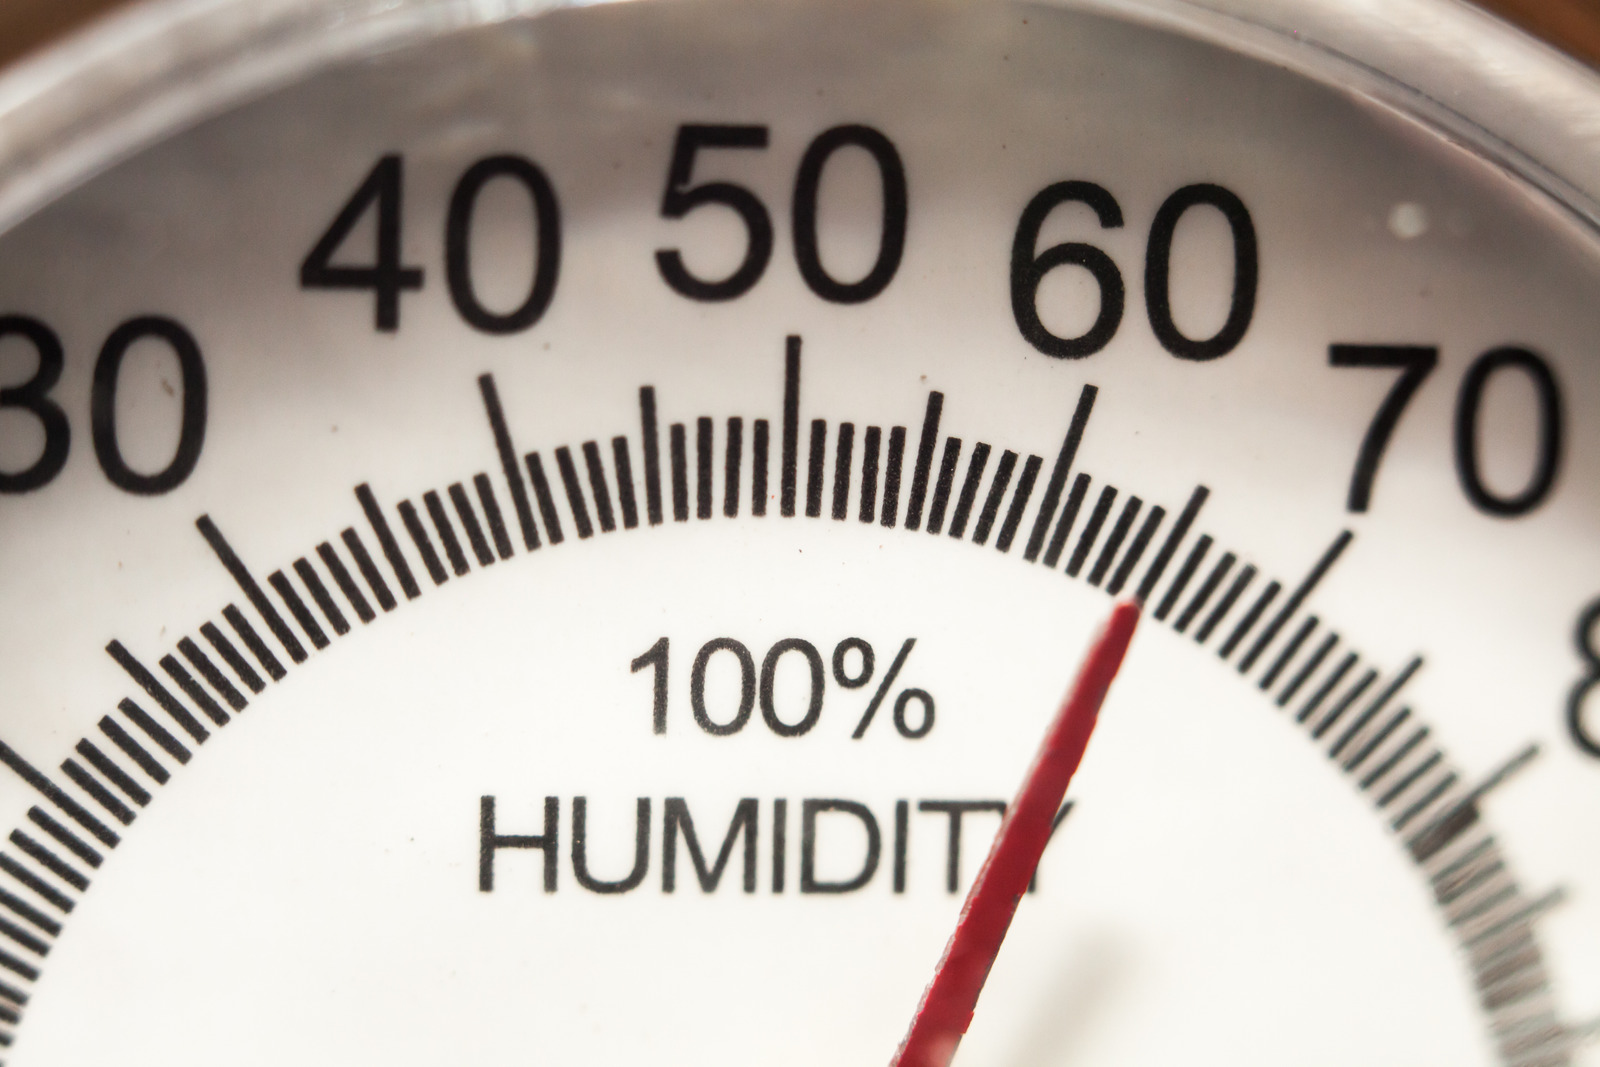 how to test humidity without a hygrometer